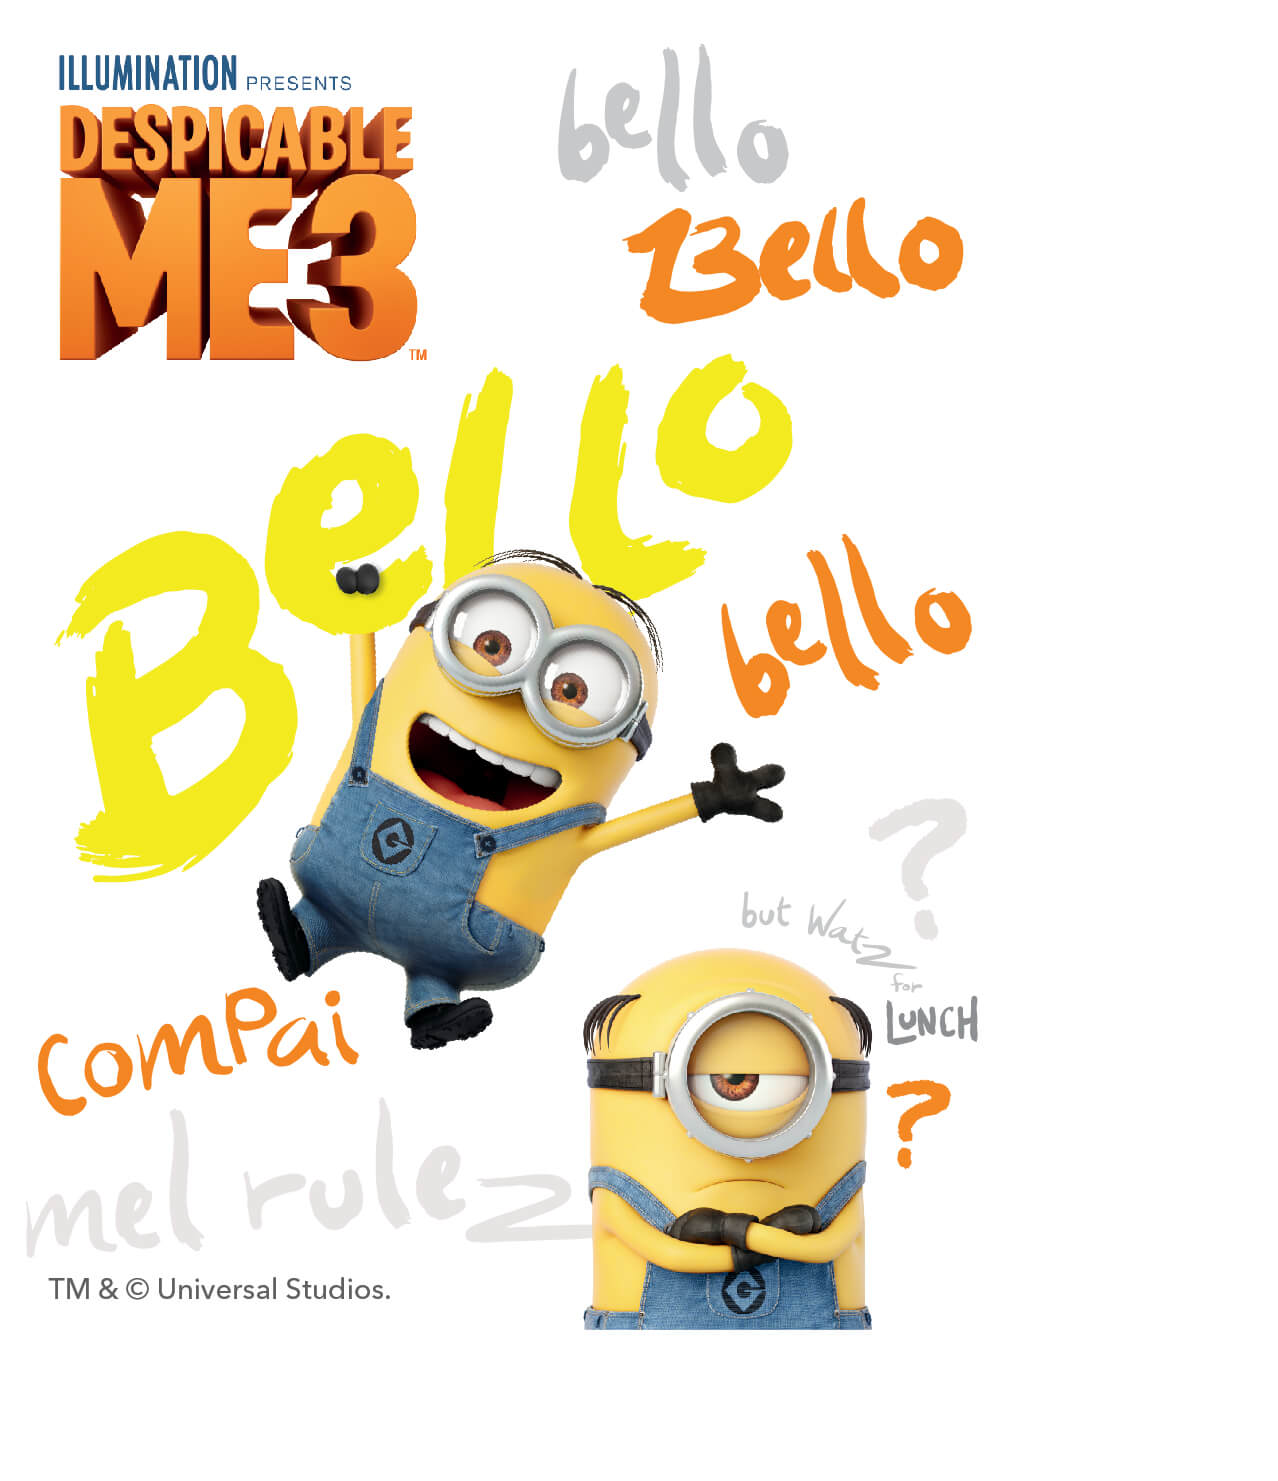 Free Despicable Me 3 Android And Iphone Wallpapers Clairesblog